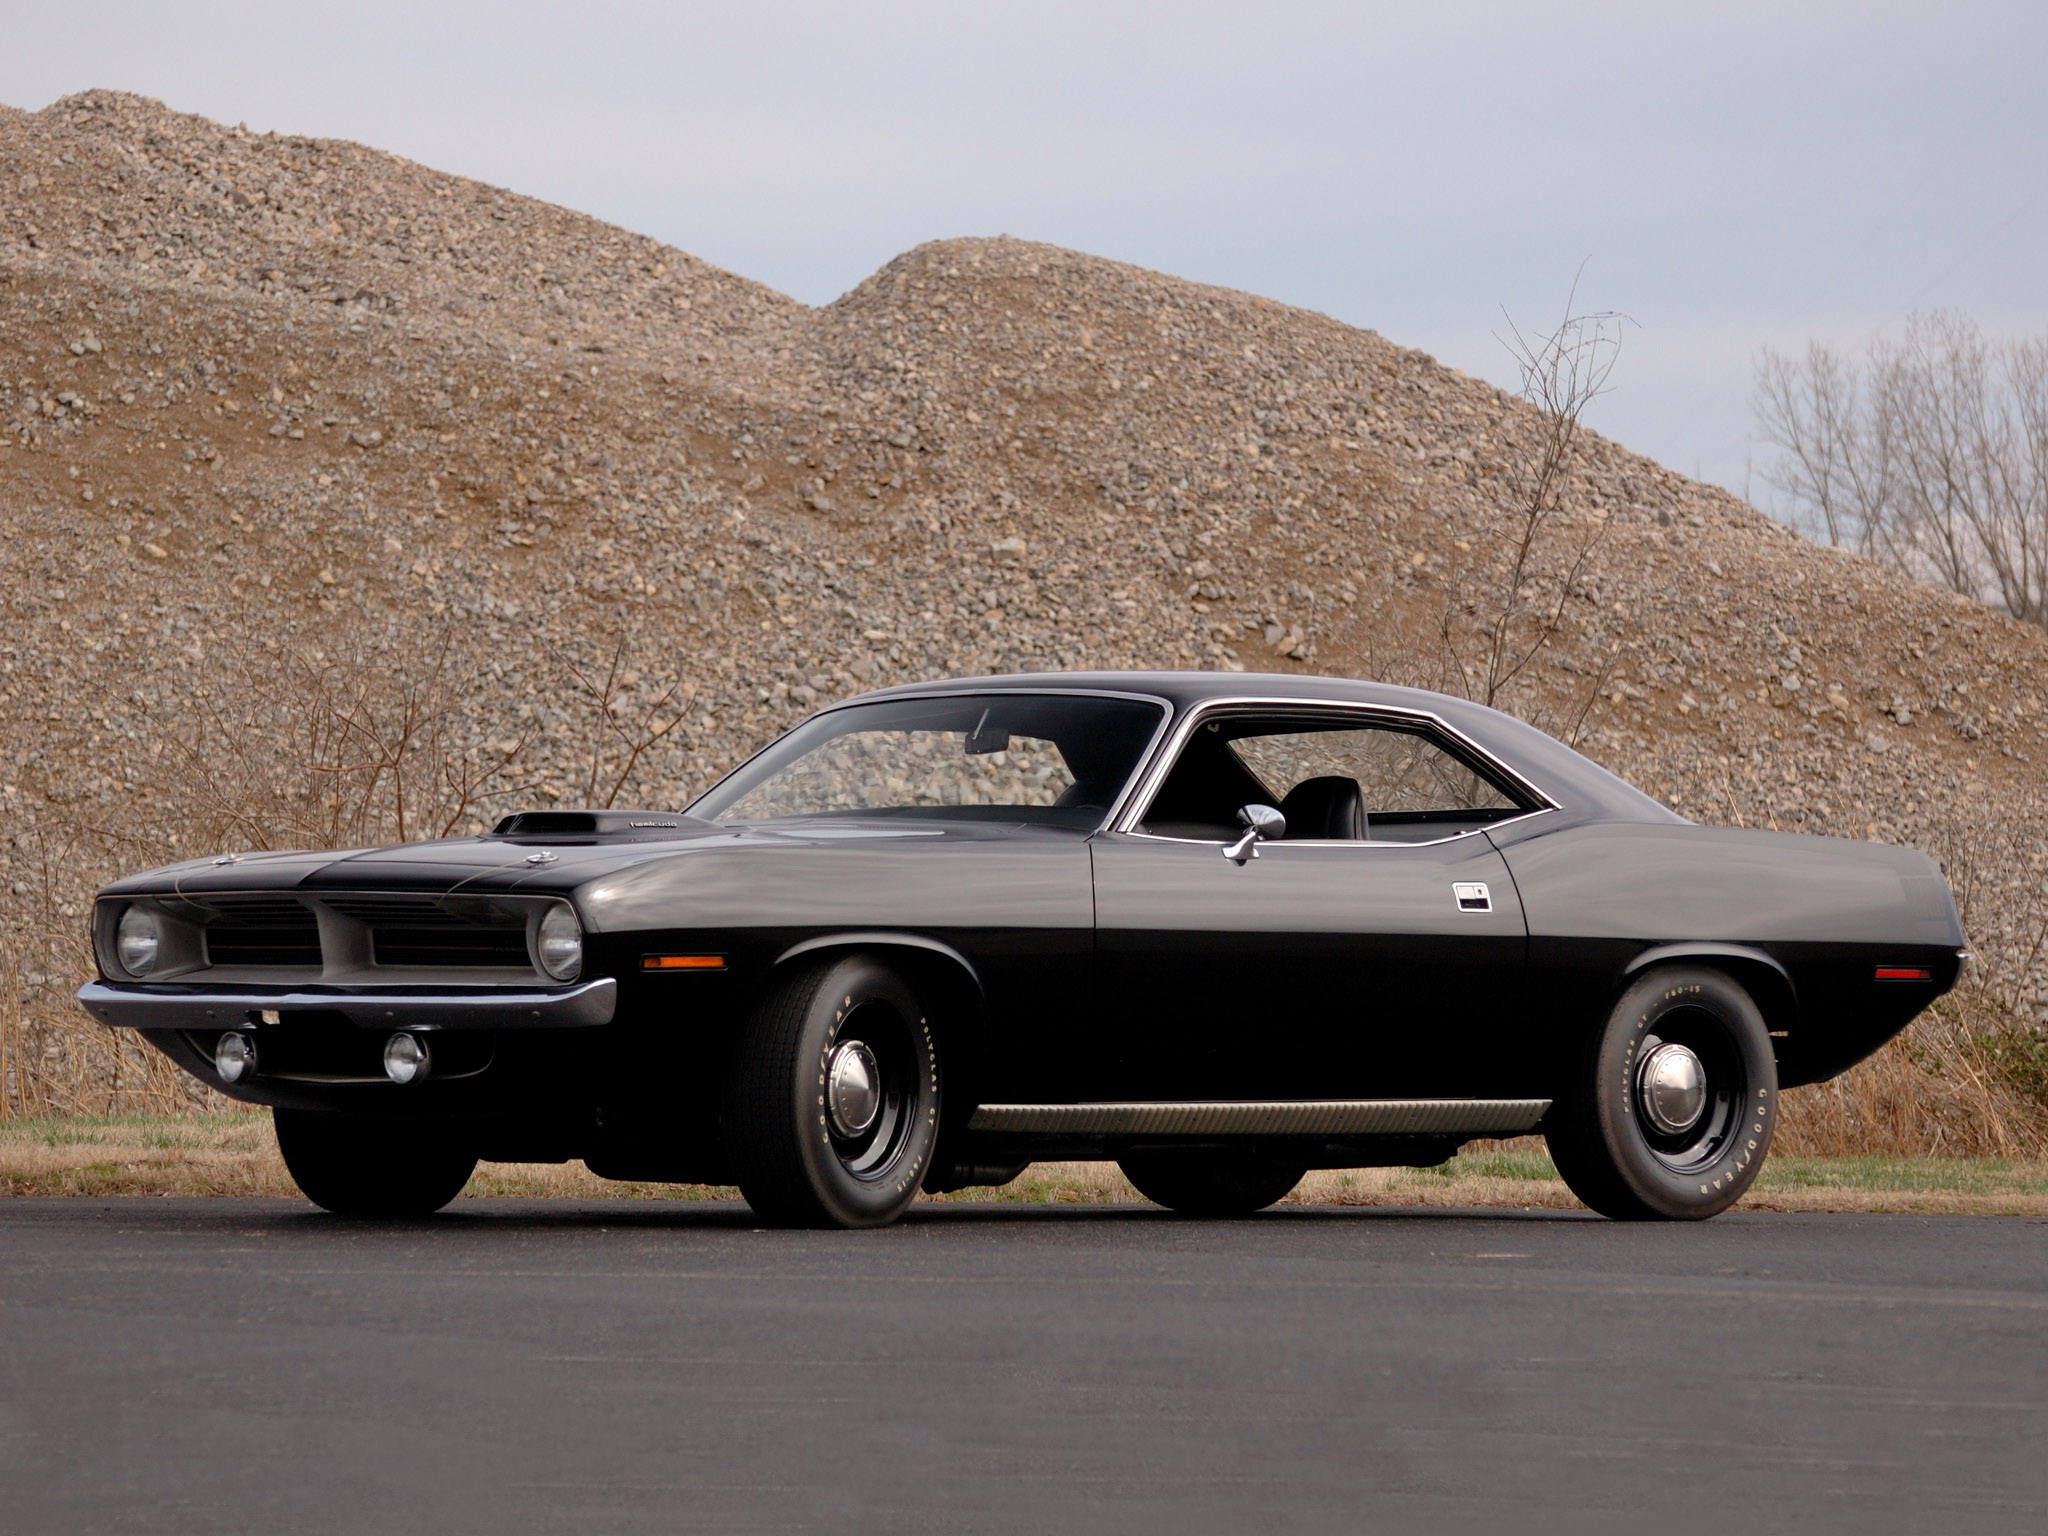 hemi muscle cars - photo #24